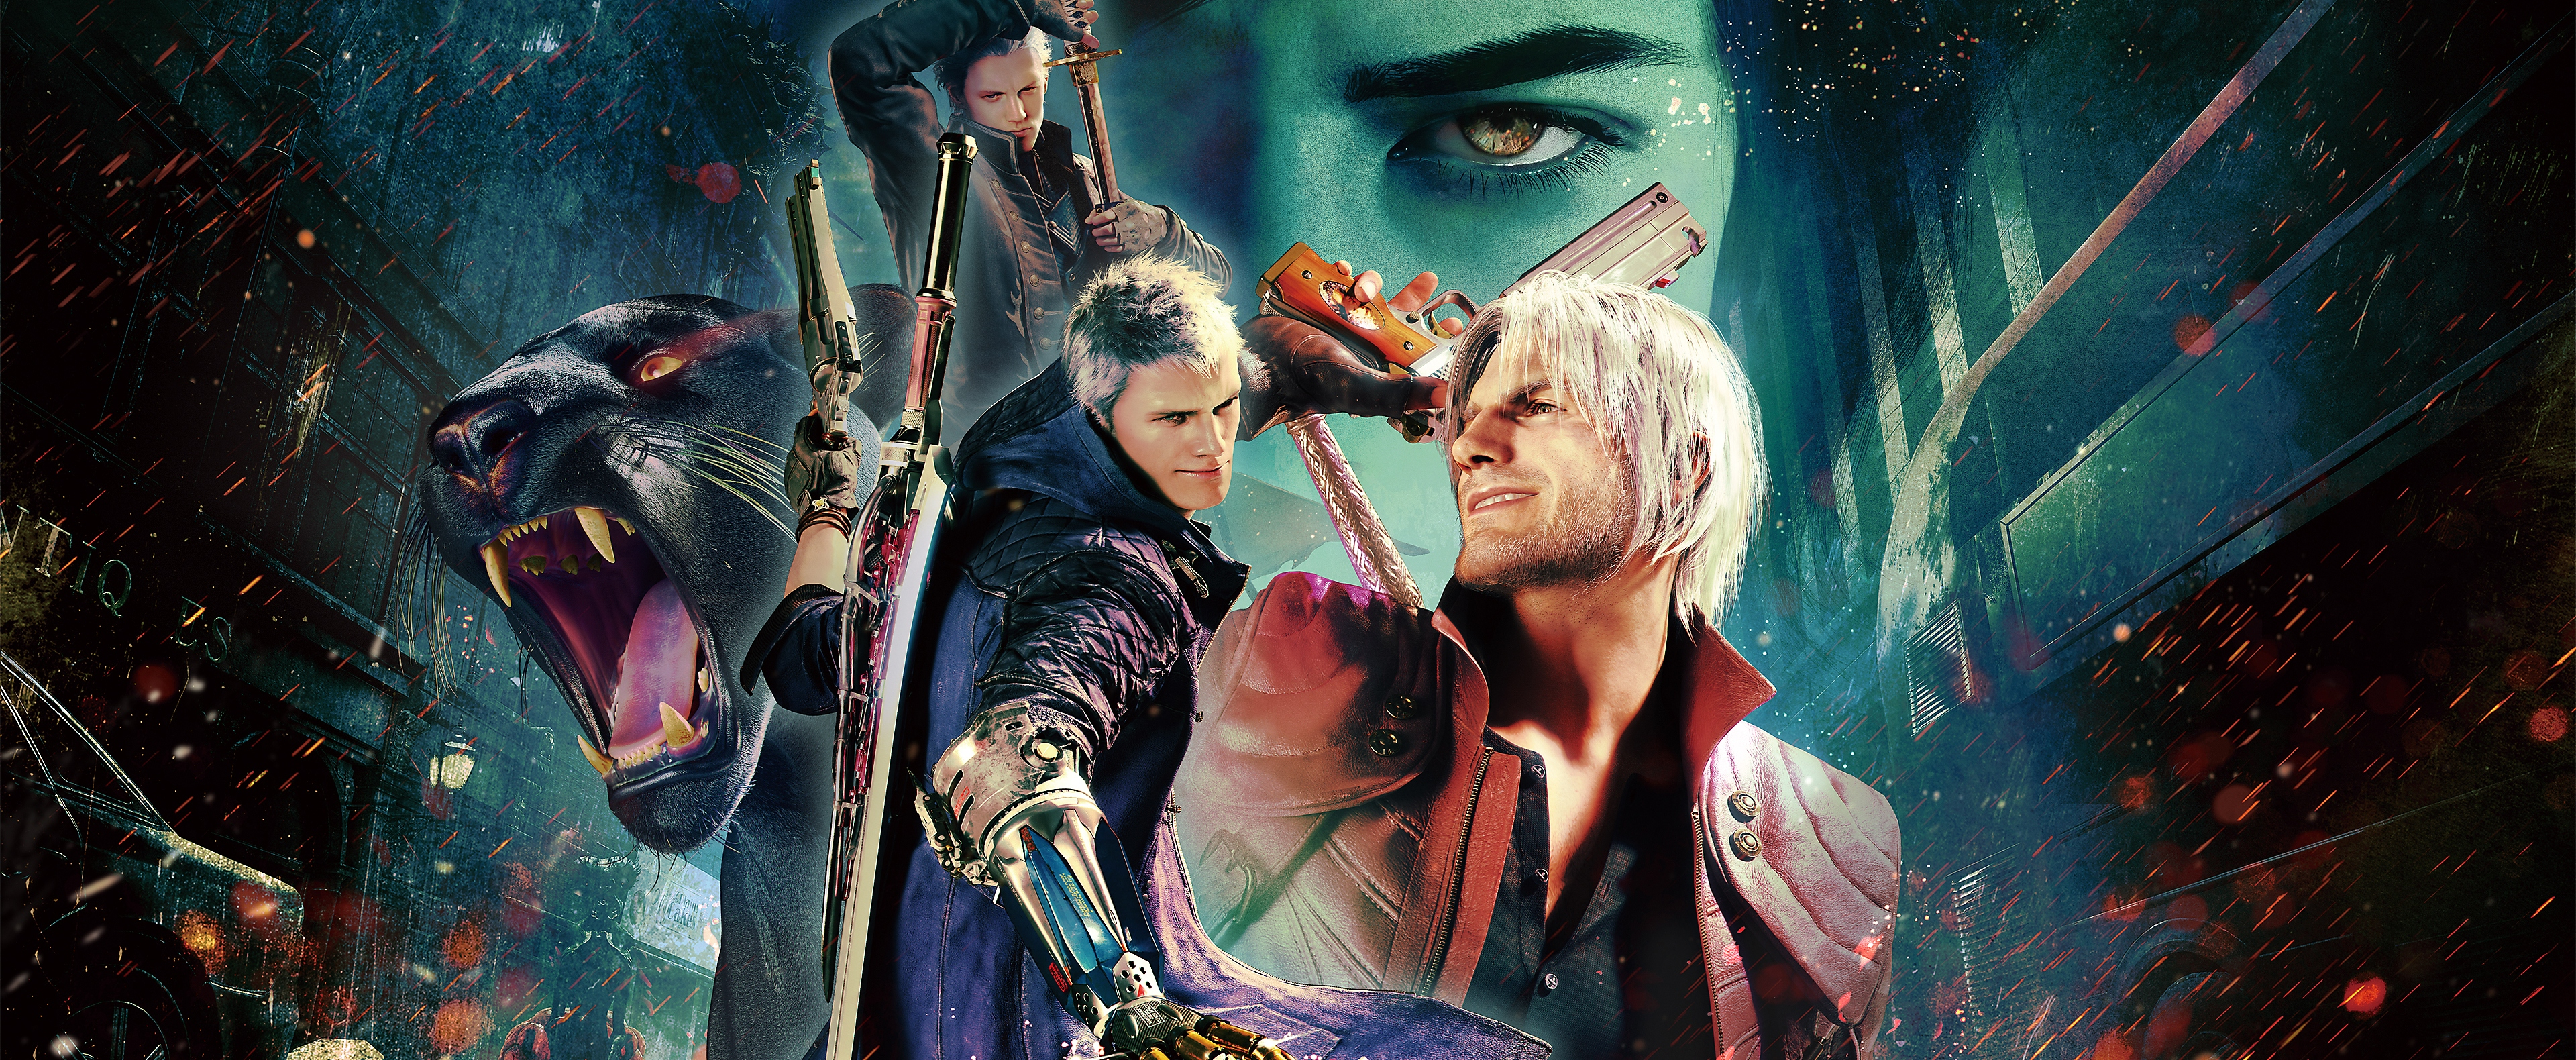 Devil May Cry 5: Special Edition  bohater